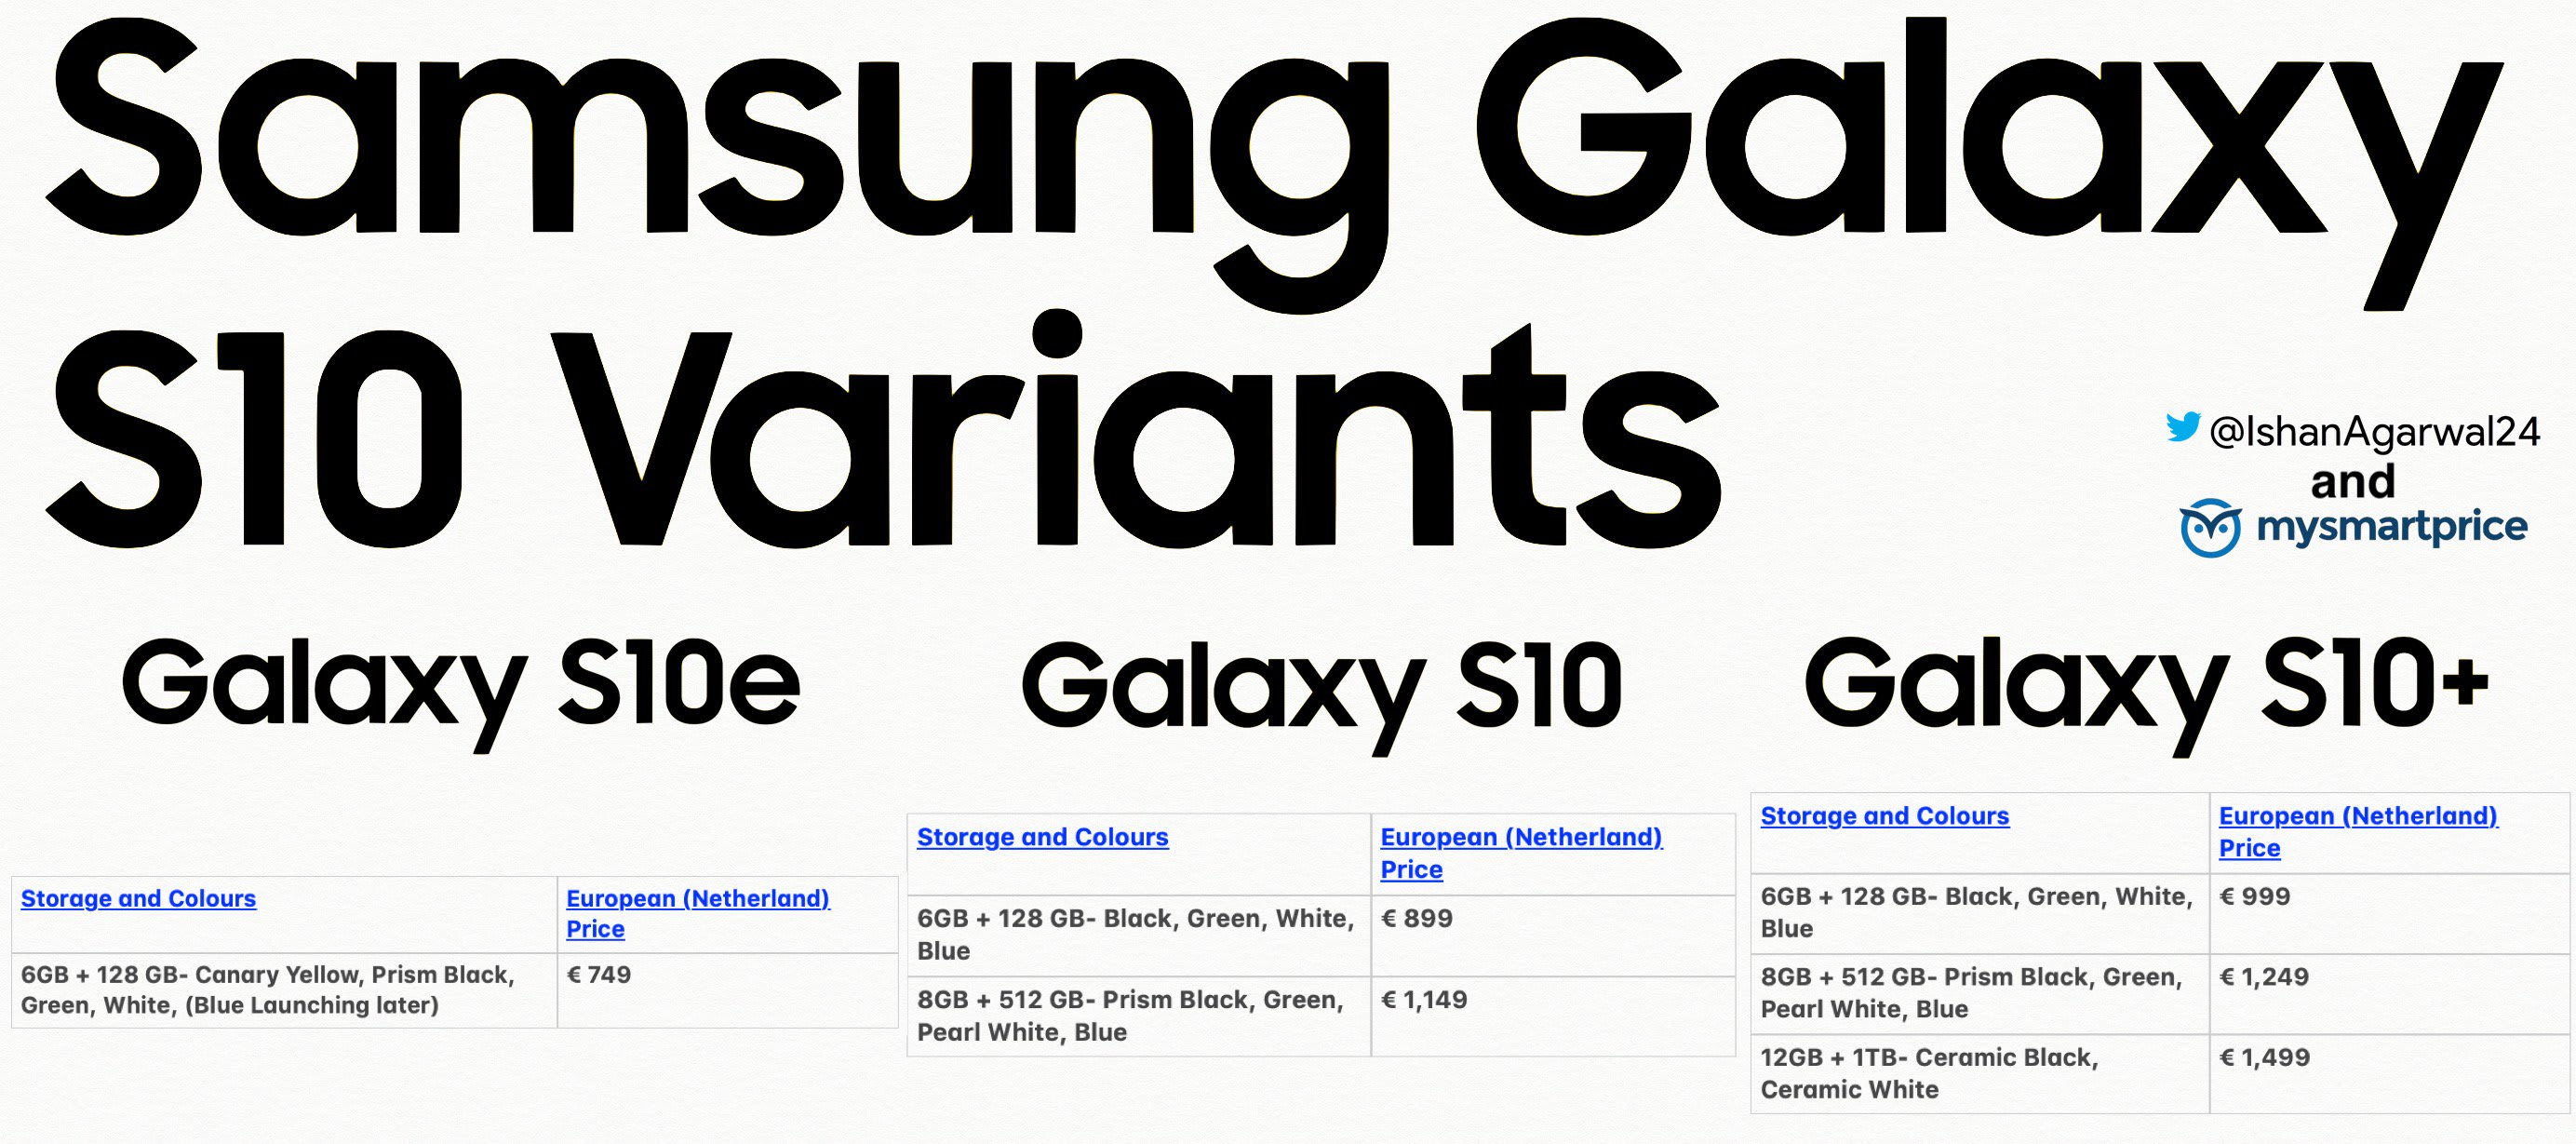 Samsung Galaxy S10 Lineup S Eu Pricing Details Leaked